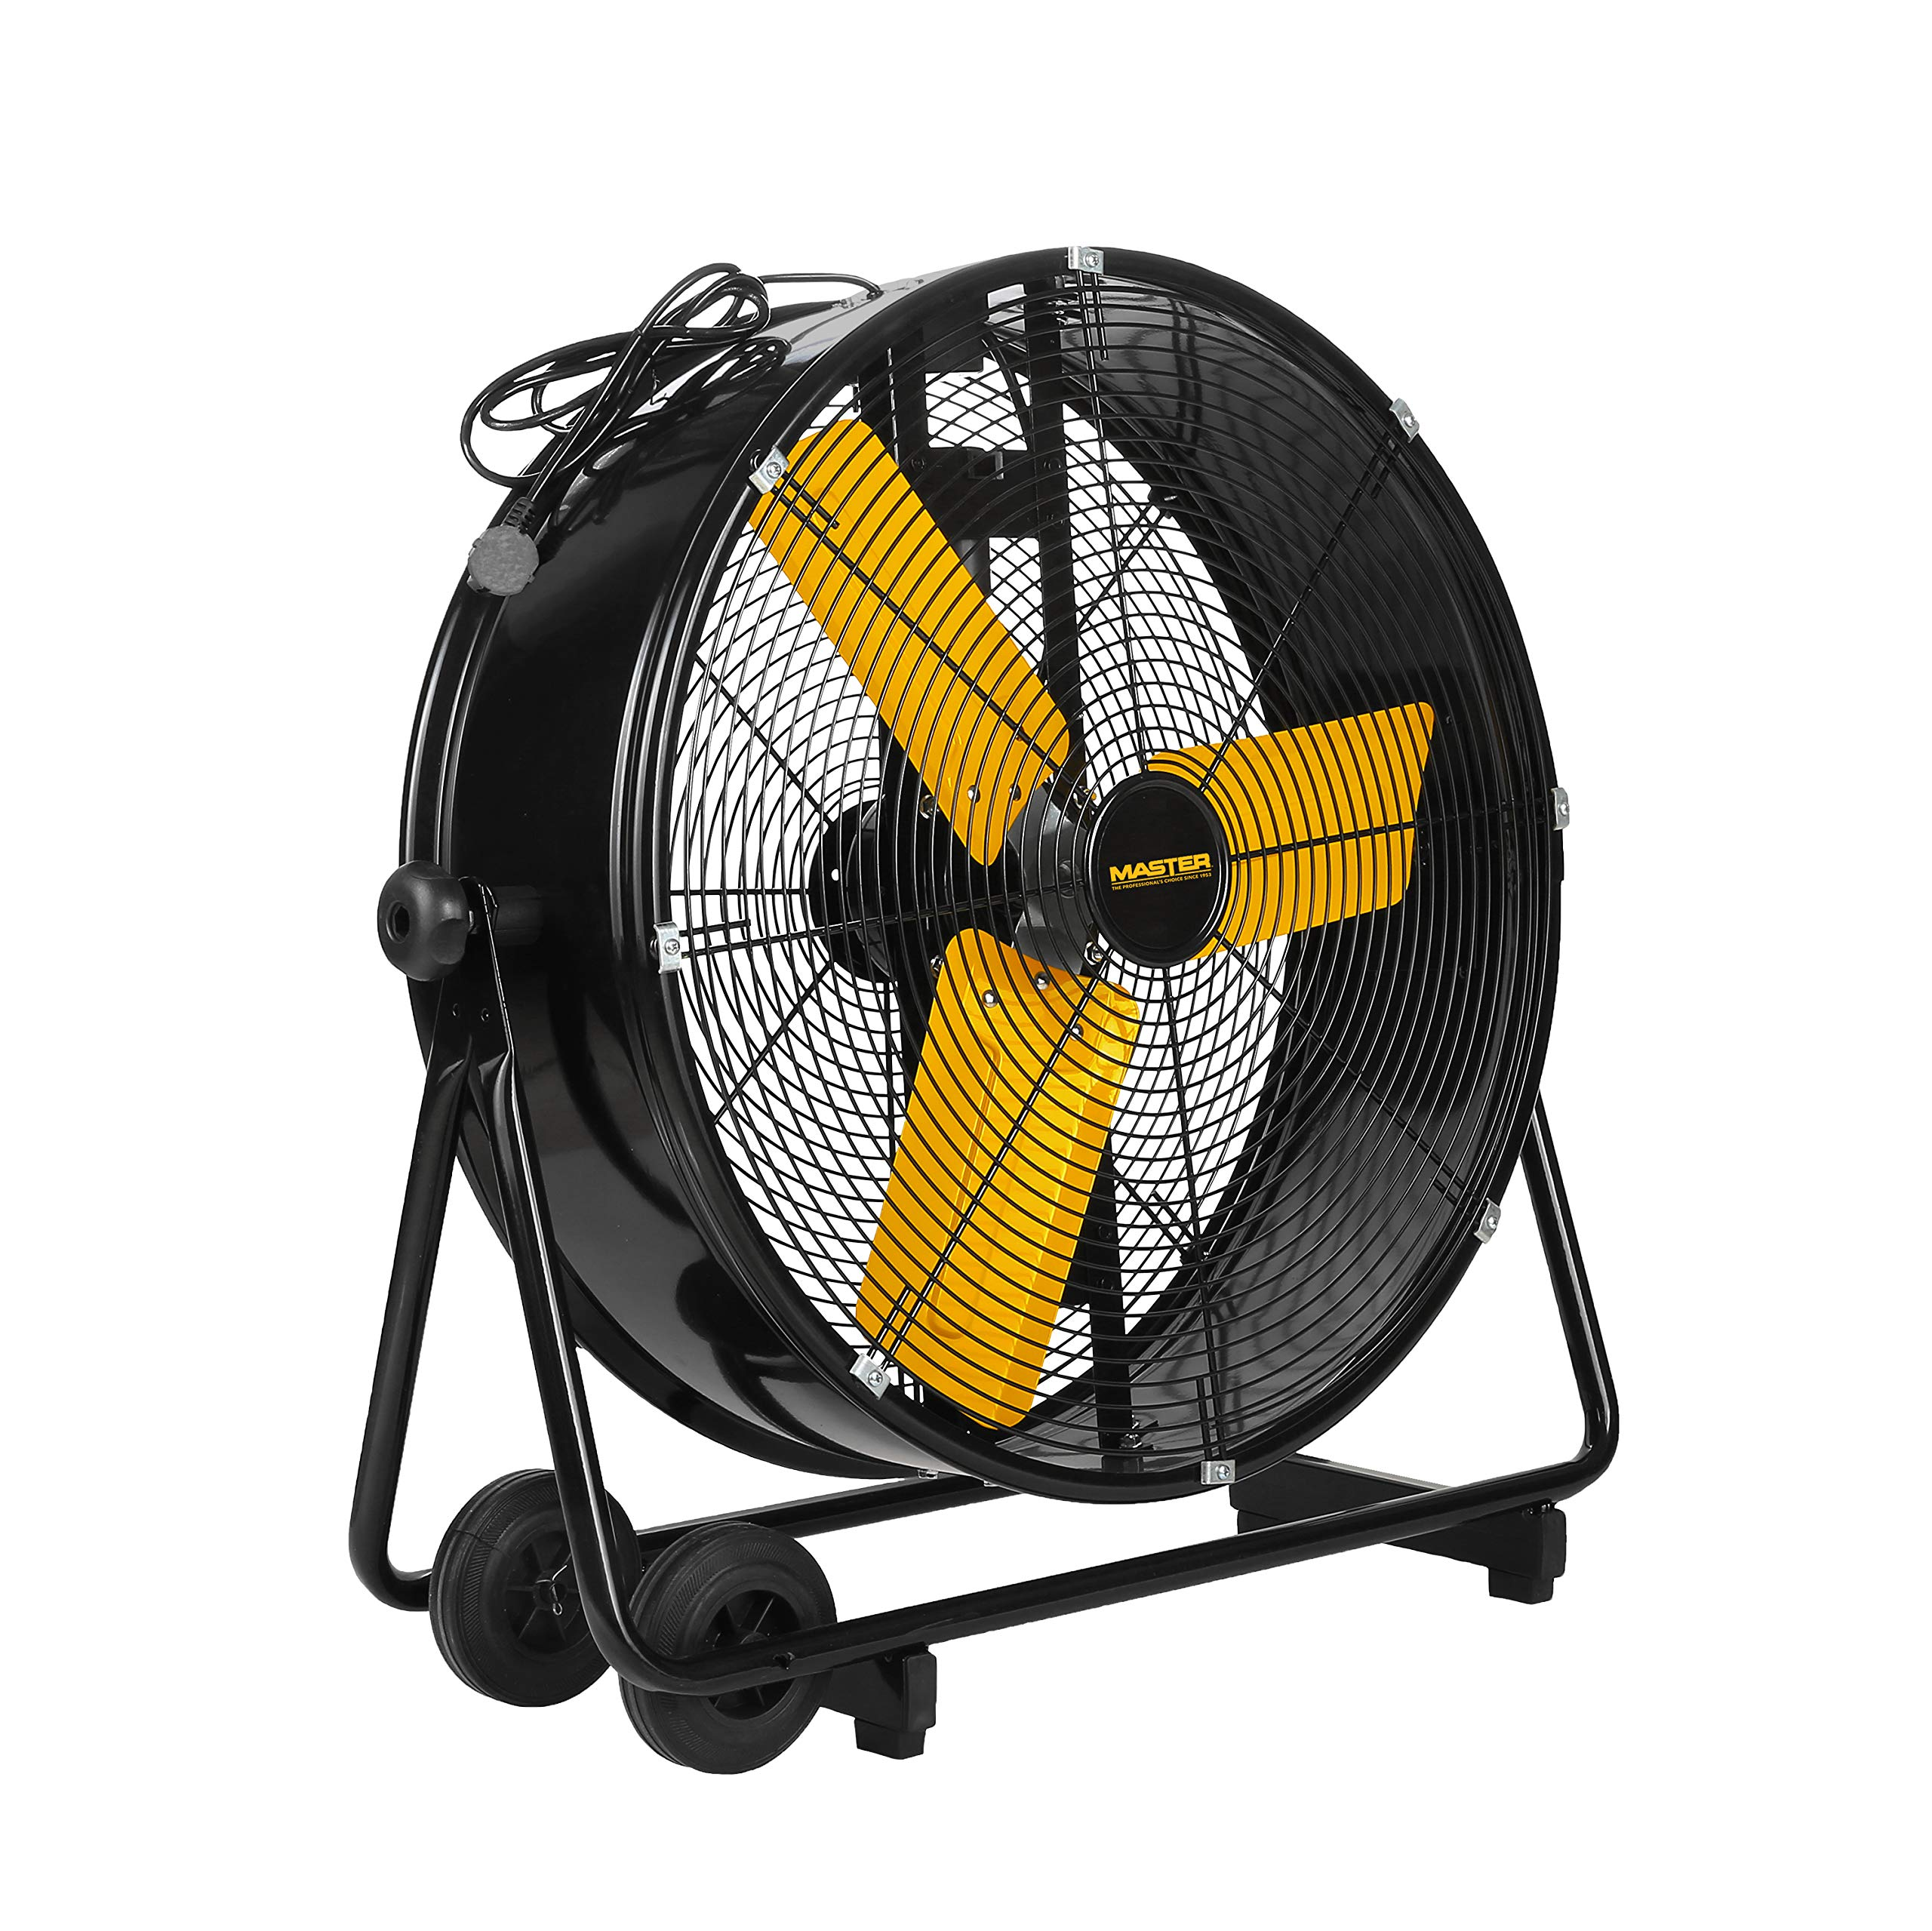 Master PROFESSIONAL Master MAC-24DCT-EP, Heavy Duty, High Velocity 24'' tiltable barrel fan, Black by Master PROFESSIONAL